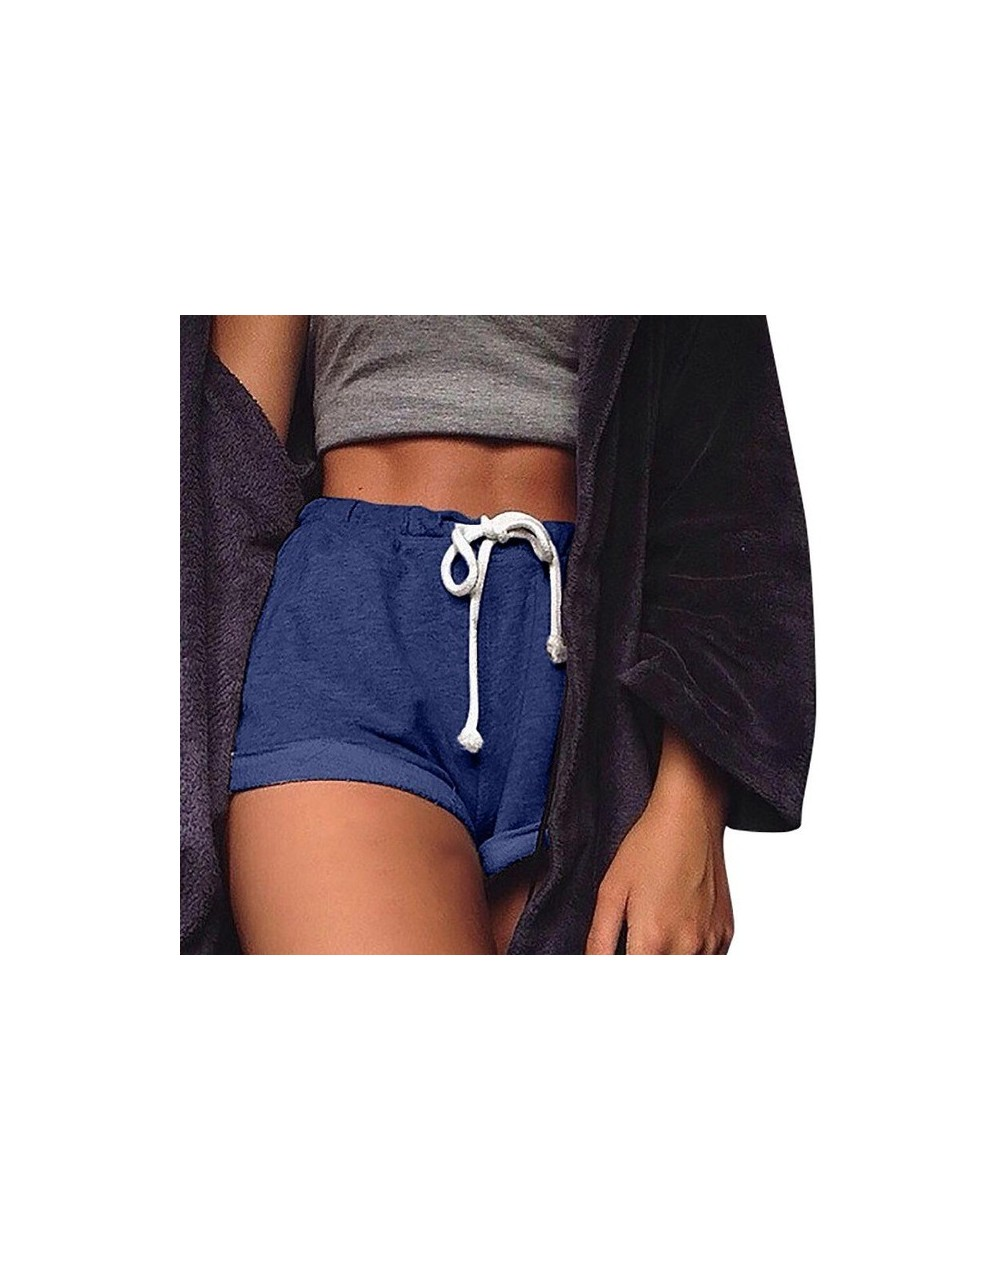 2018 Women Solid Shorts Causal Sexy Home Shorts Women's Fitness Trousers Amazing hot sale Jun 13 - Blue - 4K3998994039-2